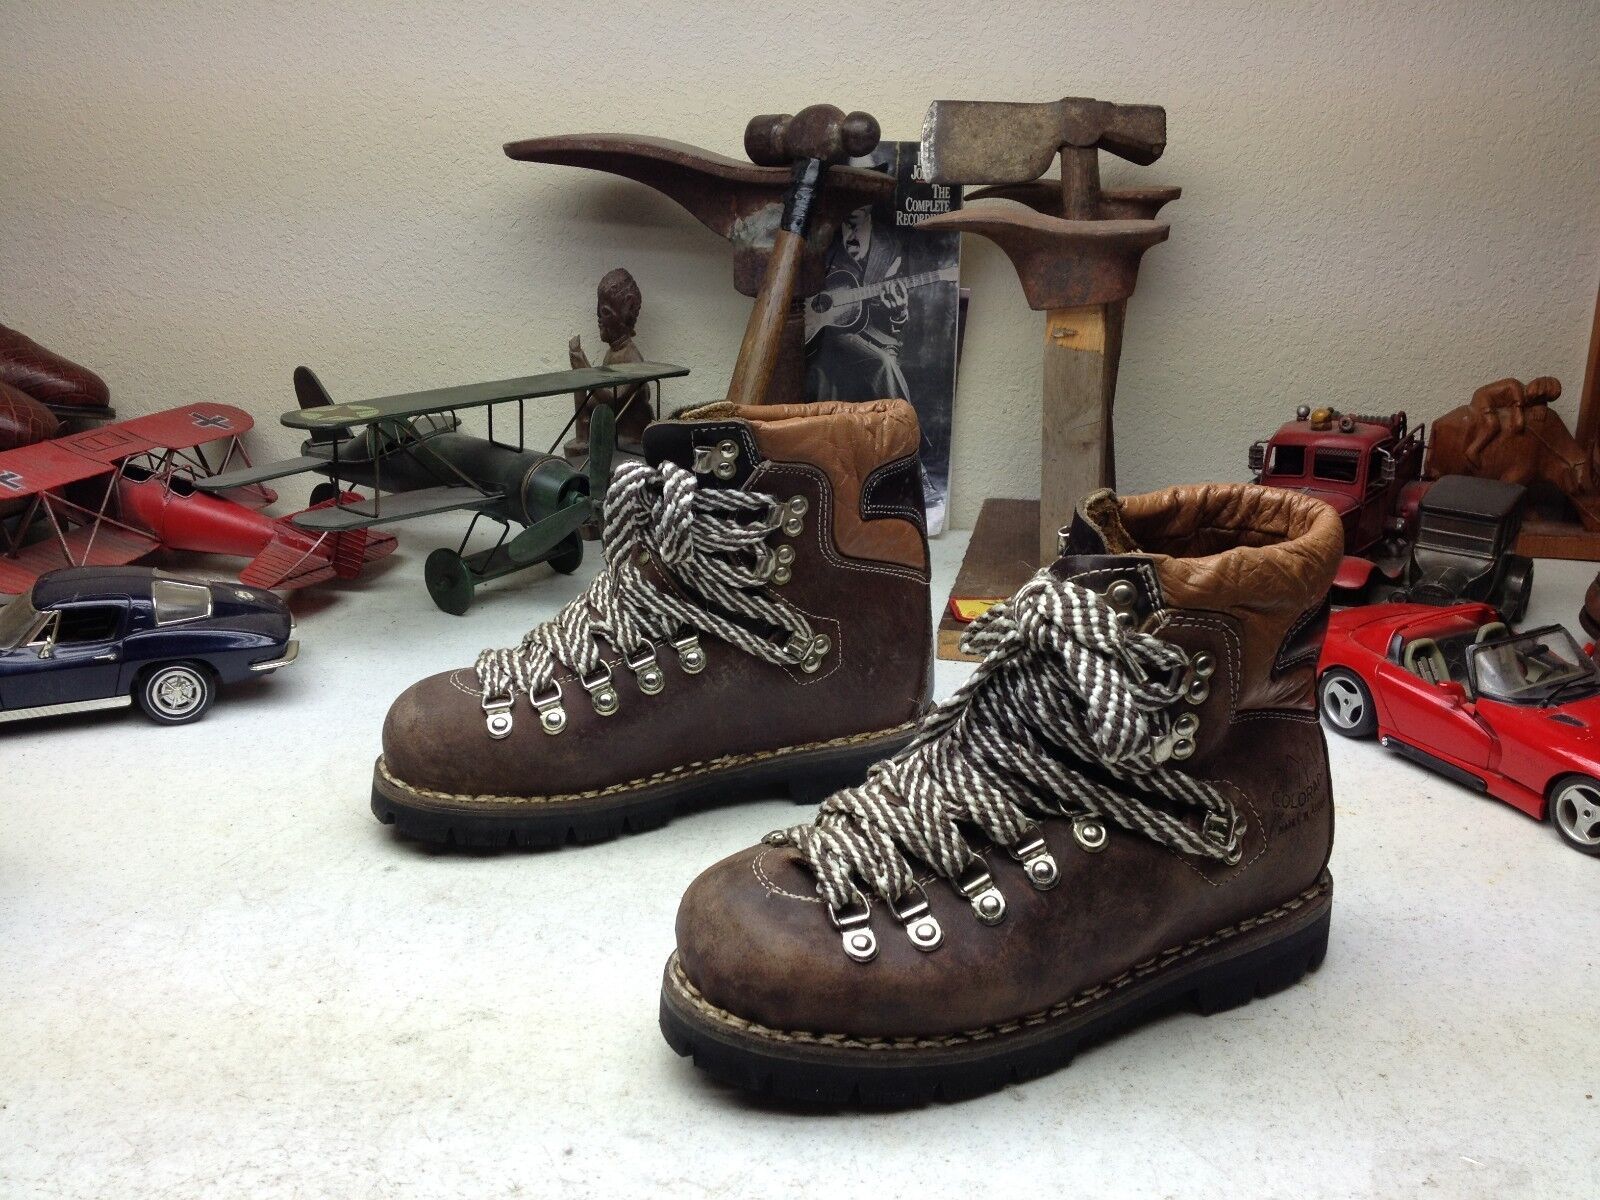 VINTAGE CouleurADO marron LEATHER LACE UP MOUNTAINEER TRAIL BOSS HIKER bottes 4.5 M